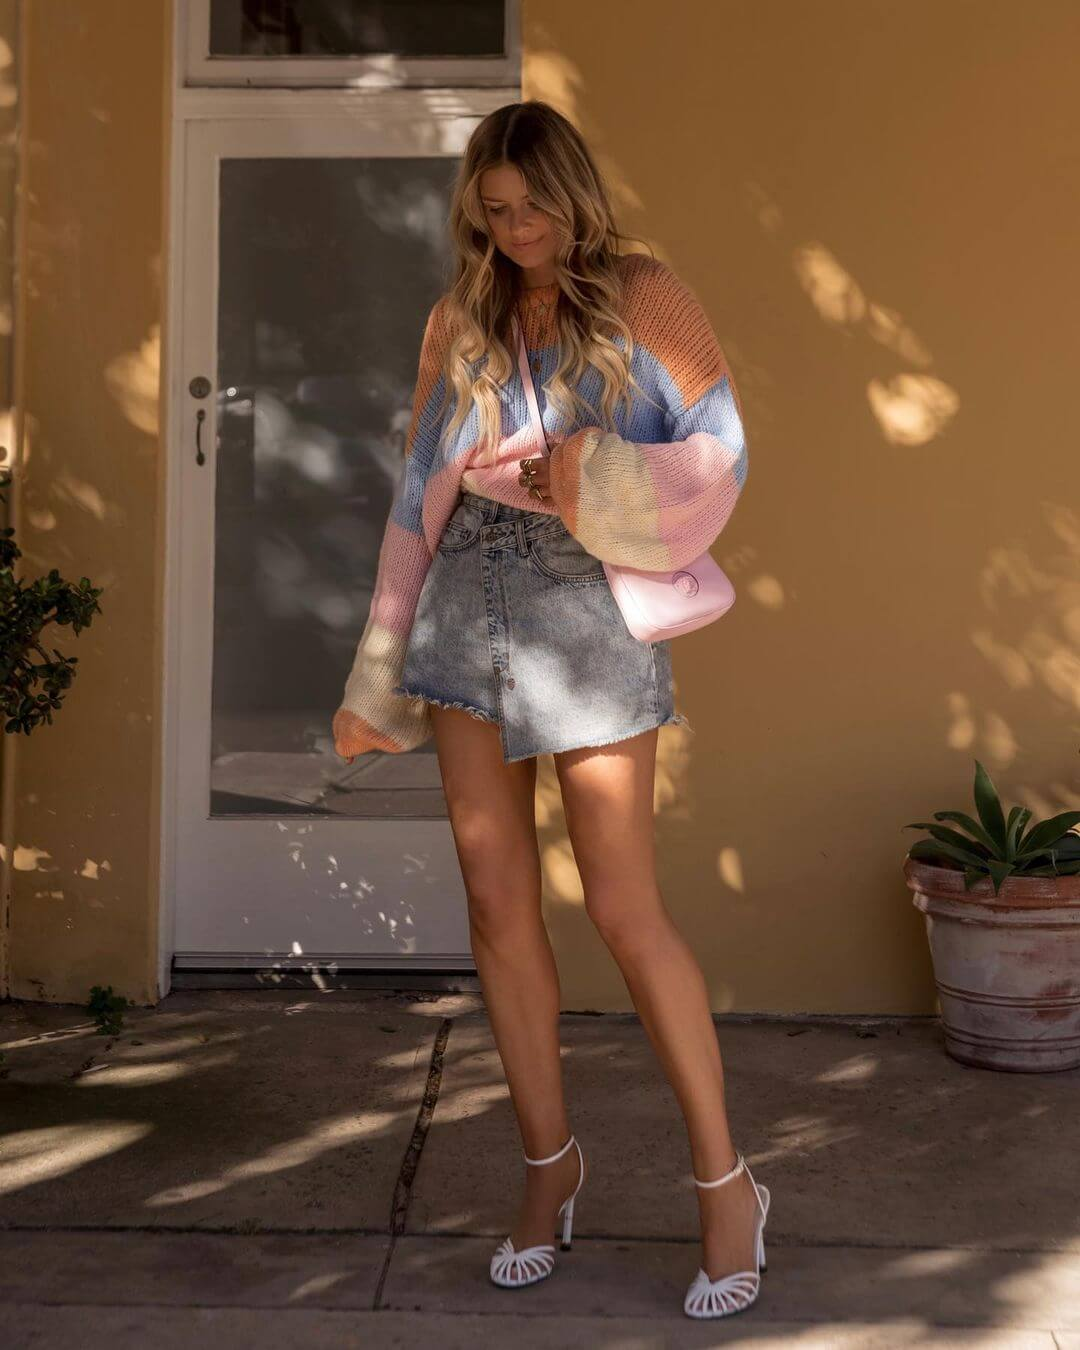 Master Transitional Dressing With This Pastel Outfit